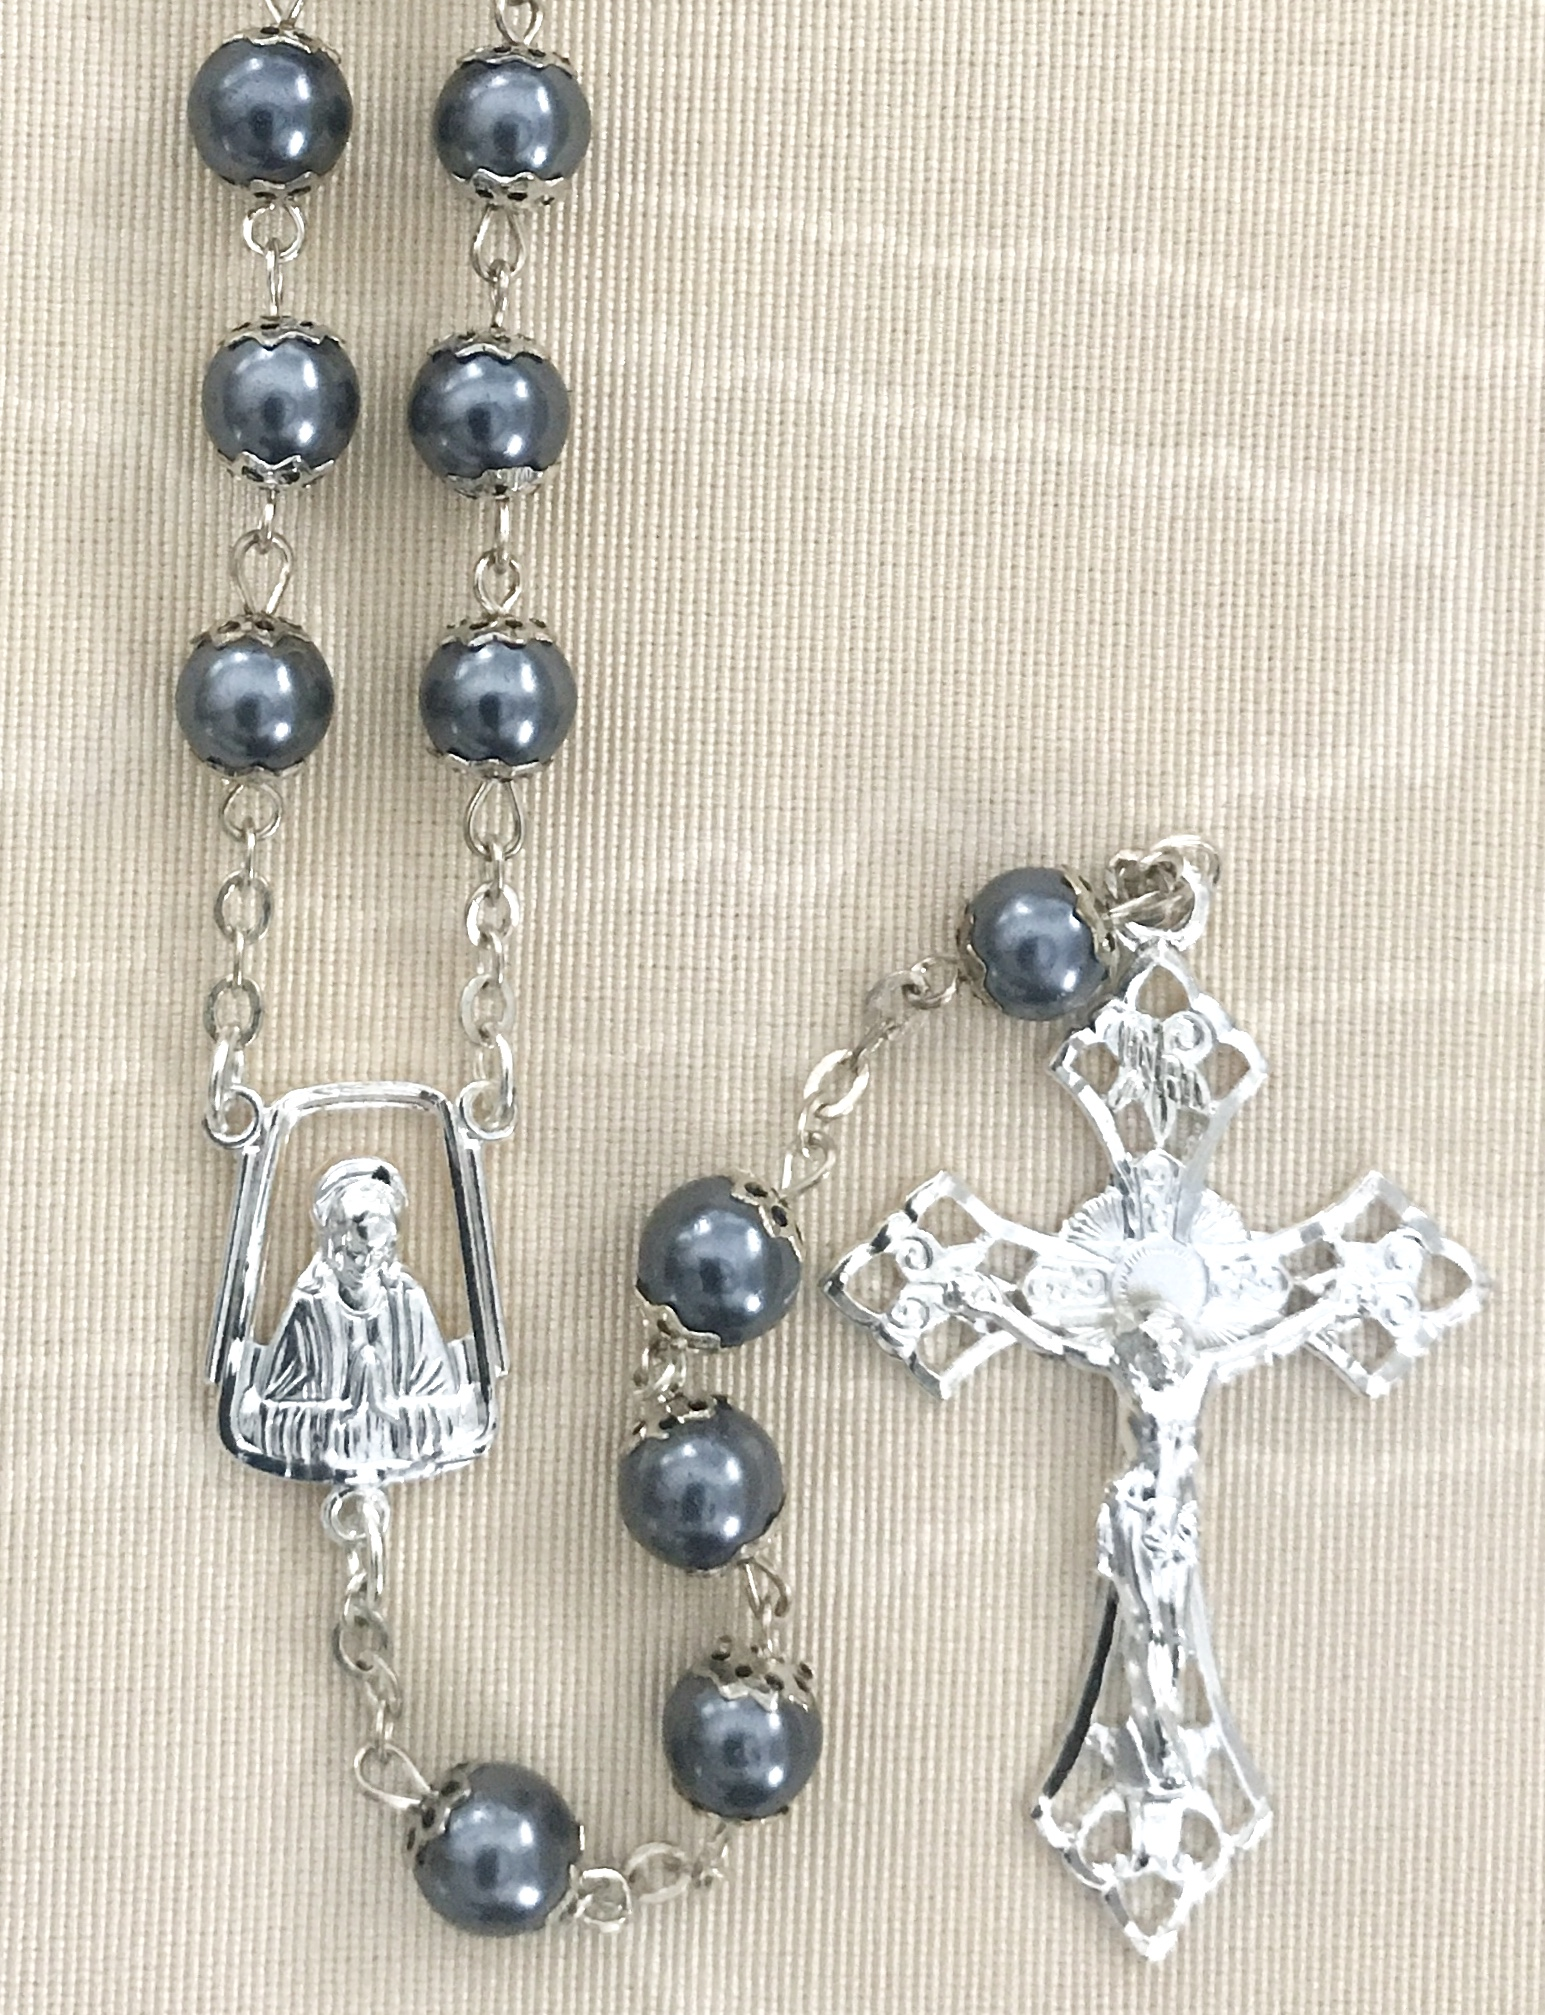 7mm GREY PEARL DOUBLE CAPPED ROSARY WITH STERLING SILVER PLATED CRUCIFIX AND CENTER GIFT BOXED